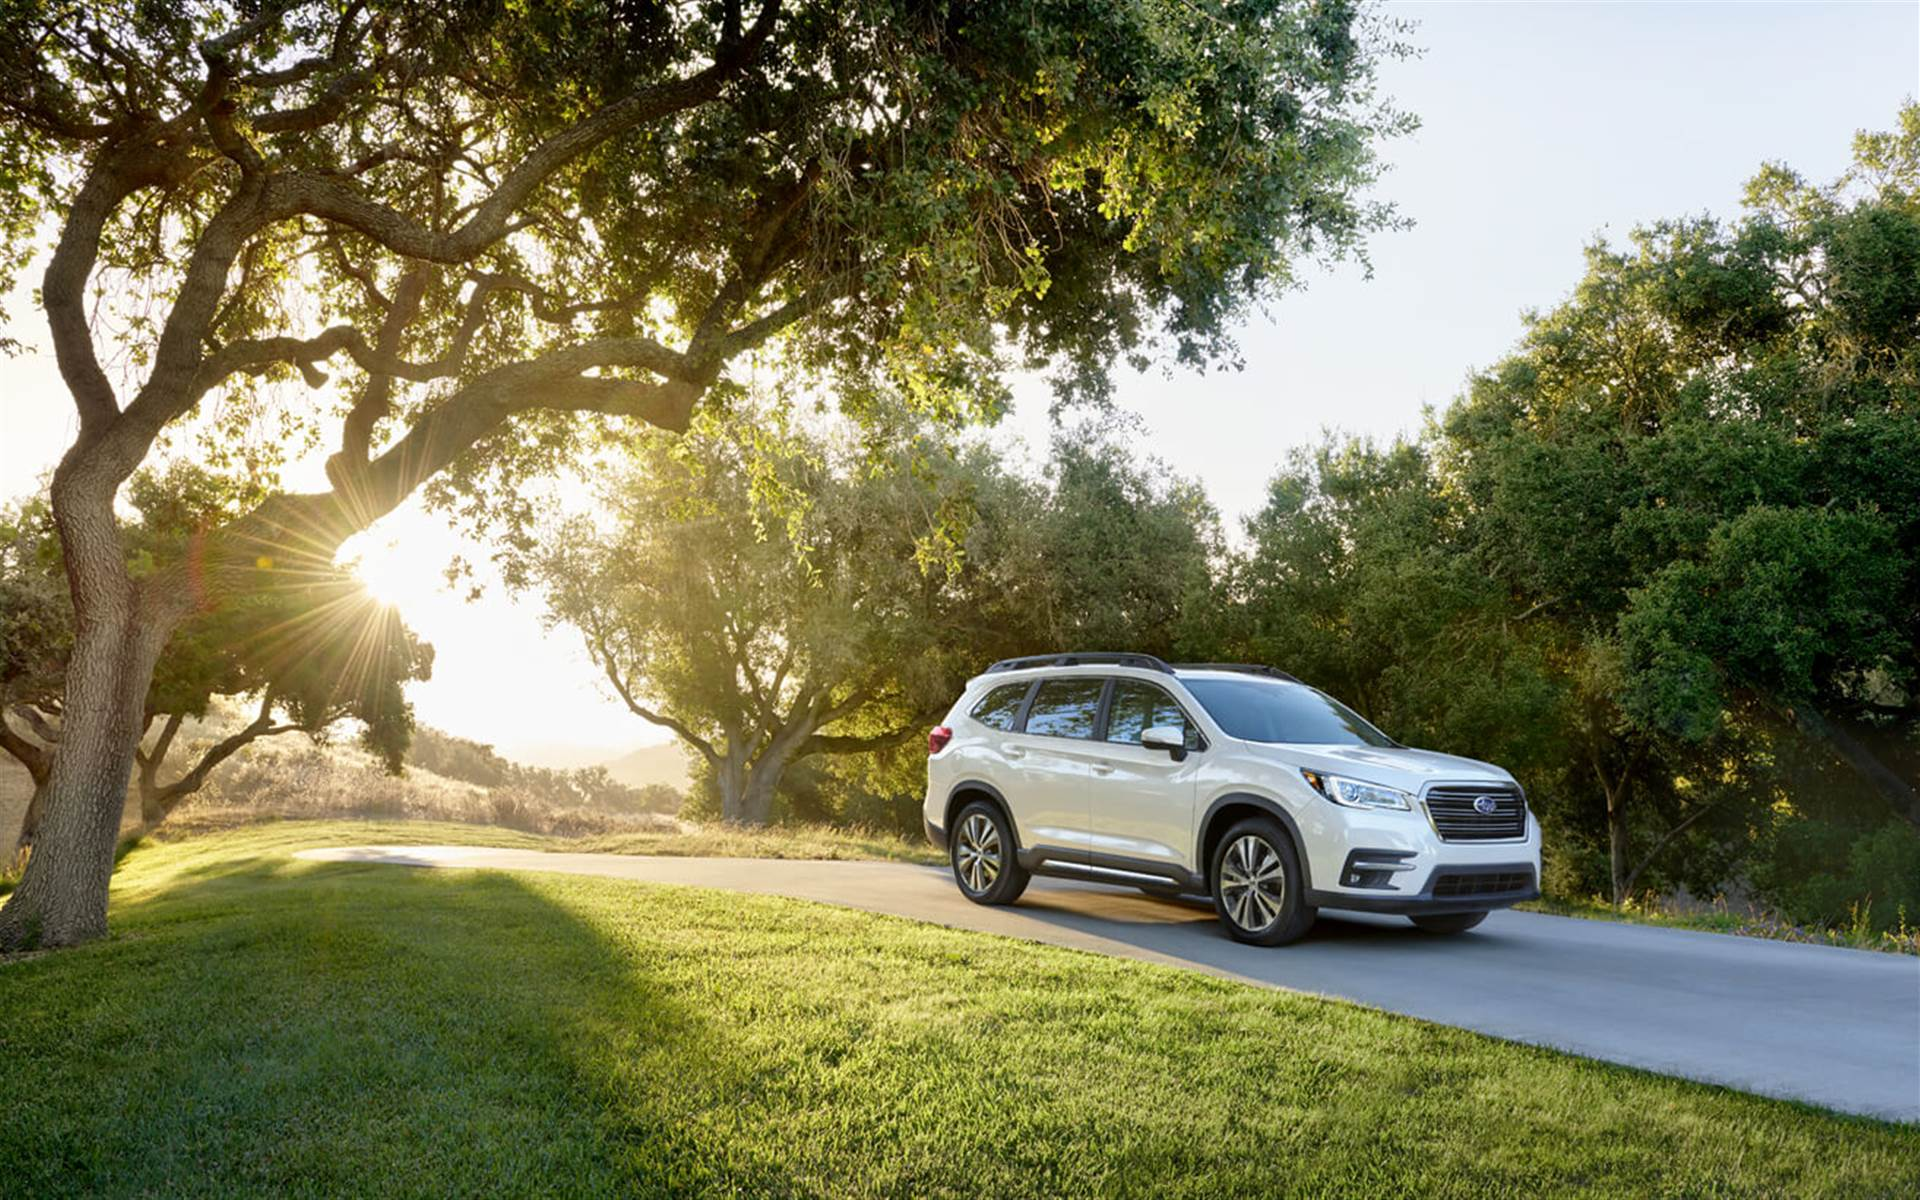 2018 Subaru Ascent Release Date >> 2018 Subaru Ascent Price * Release date * Performance * Specs